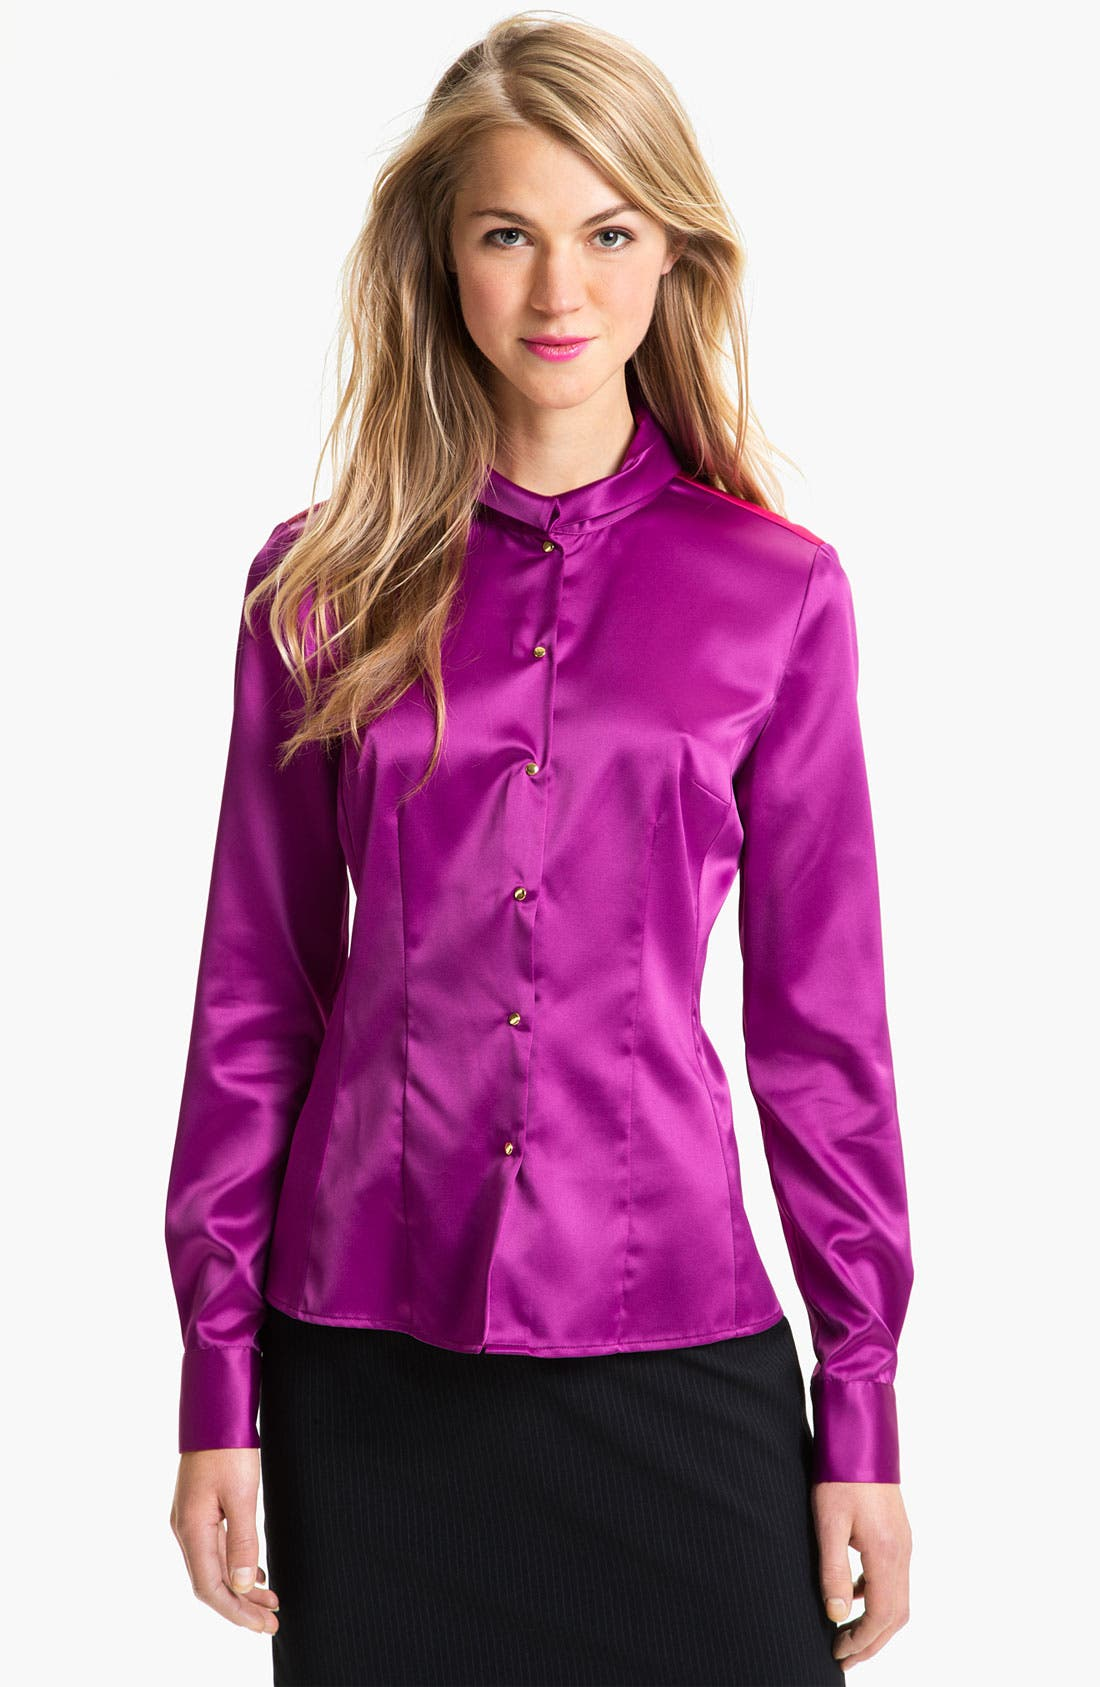 Alternate Image 1 Selected - T Tahari 'Baker' Blouse (Petite)